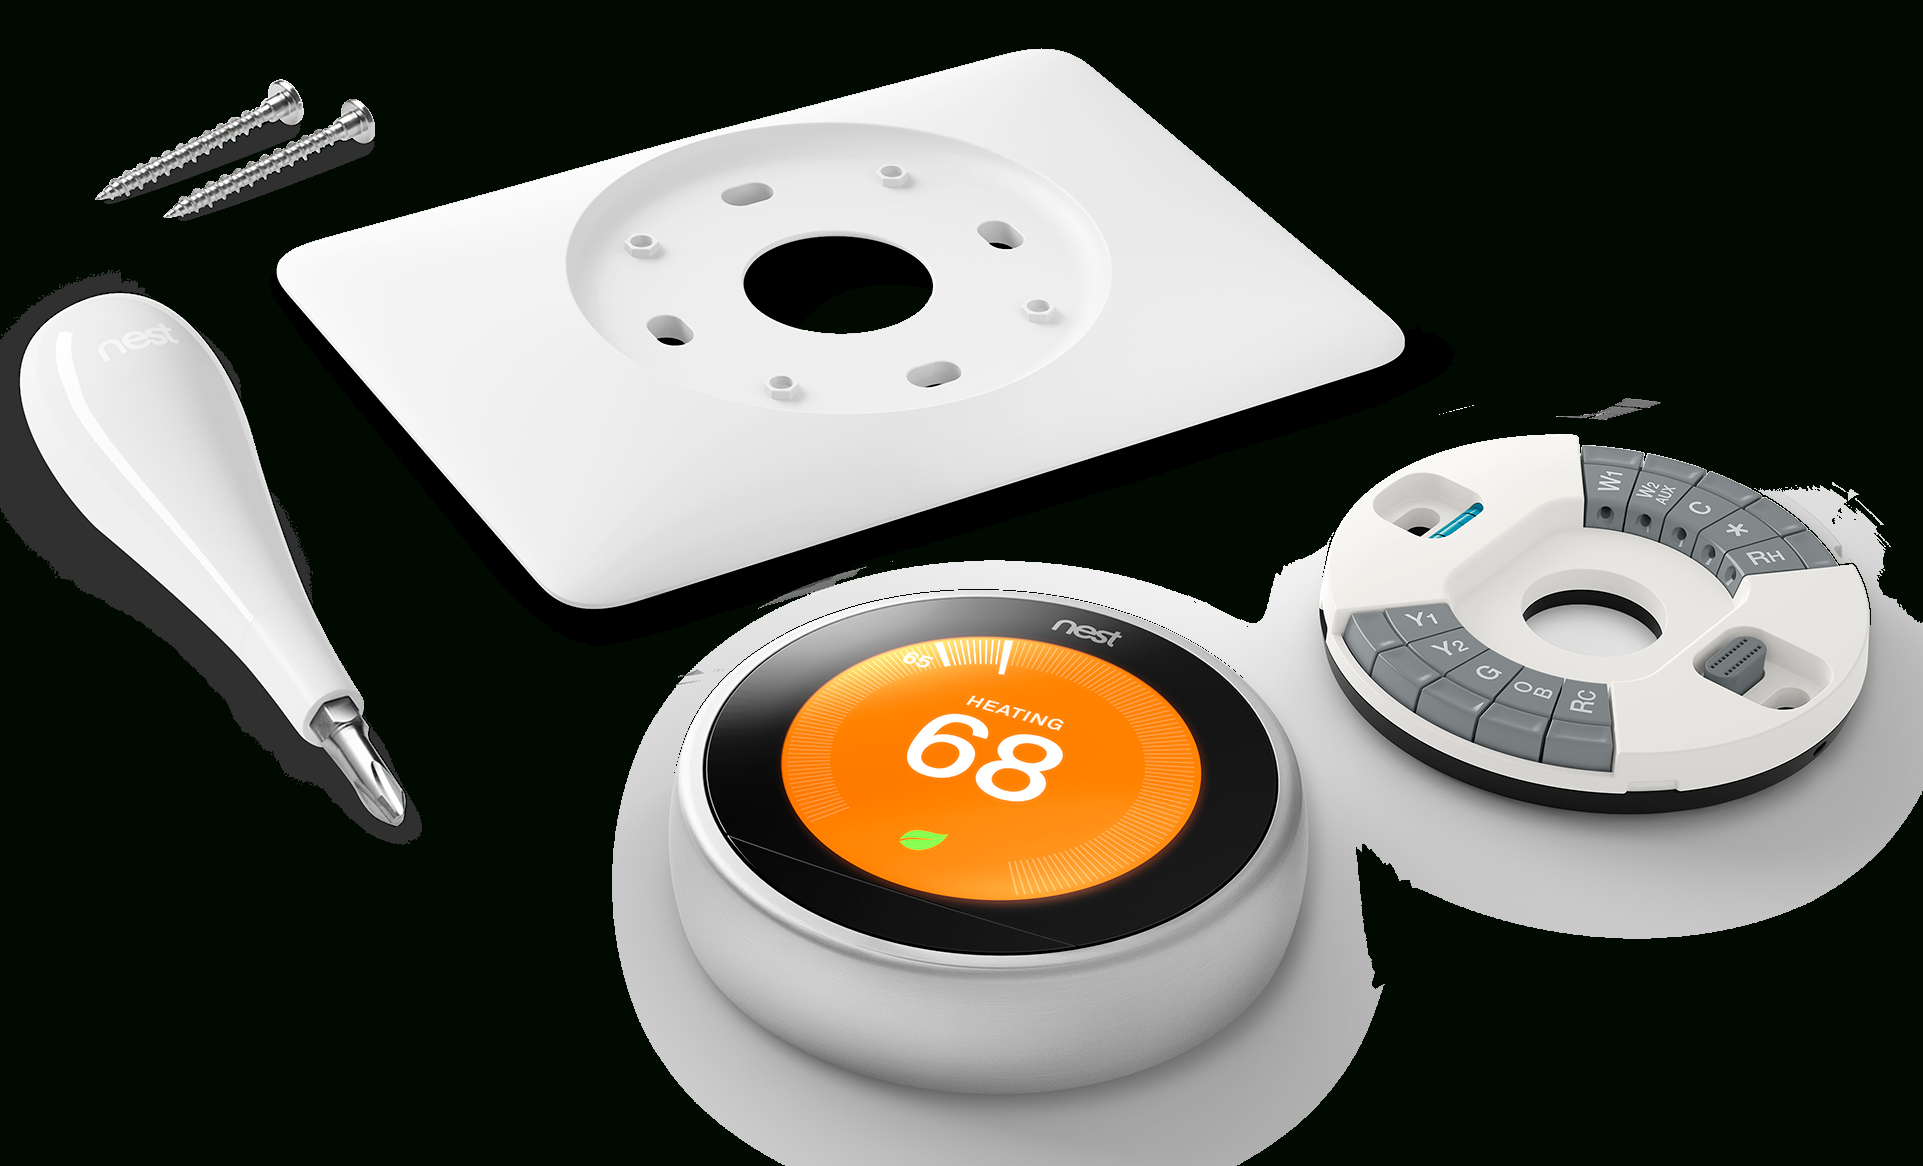 How To Install Your Nest Thermostat - Nest Thermostat E Wiring Diagram Uk